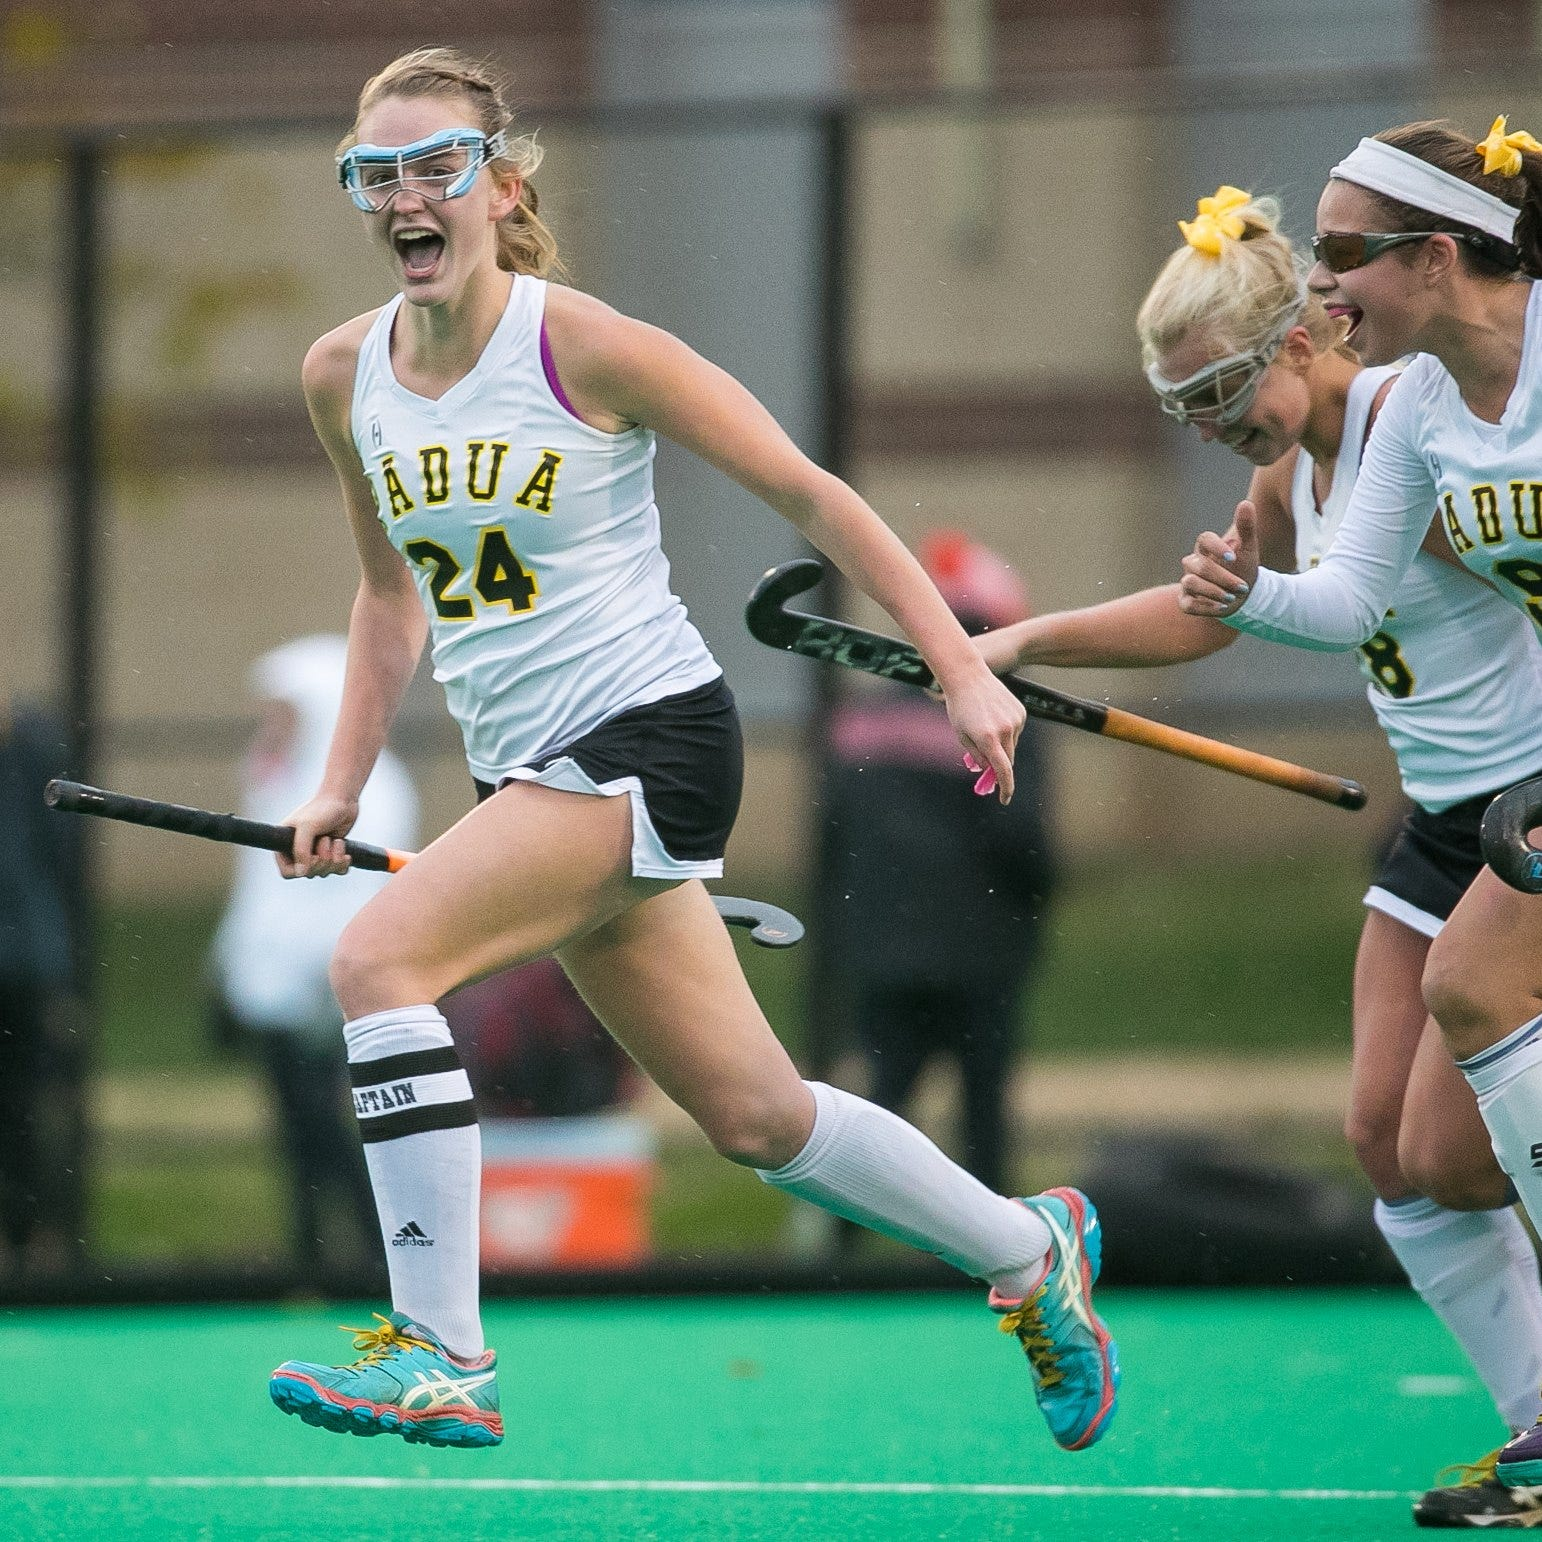 Padua makes field hockey history, now has bigger challenge vs. Cape Henlopen